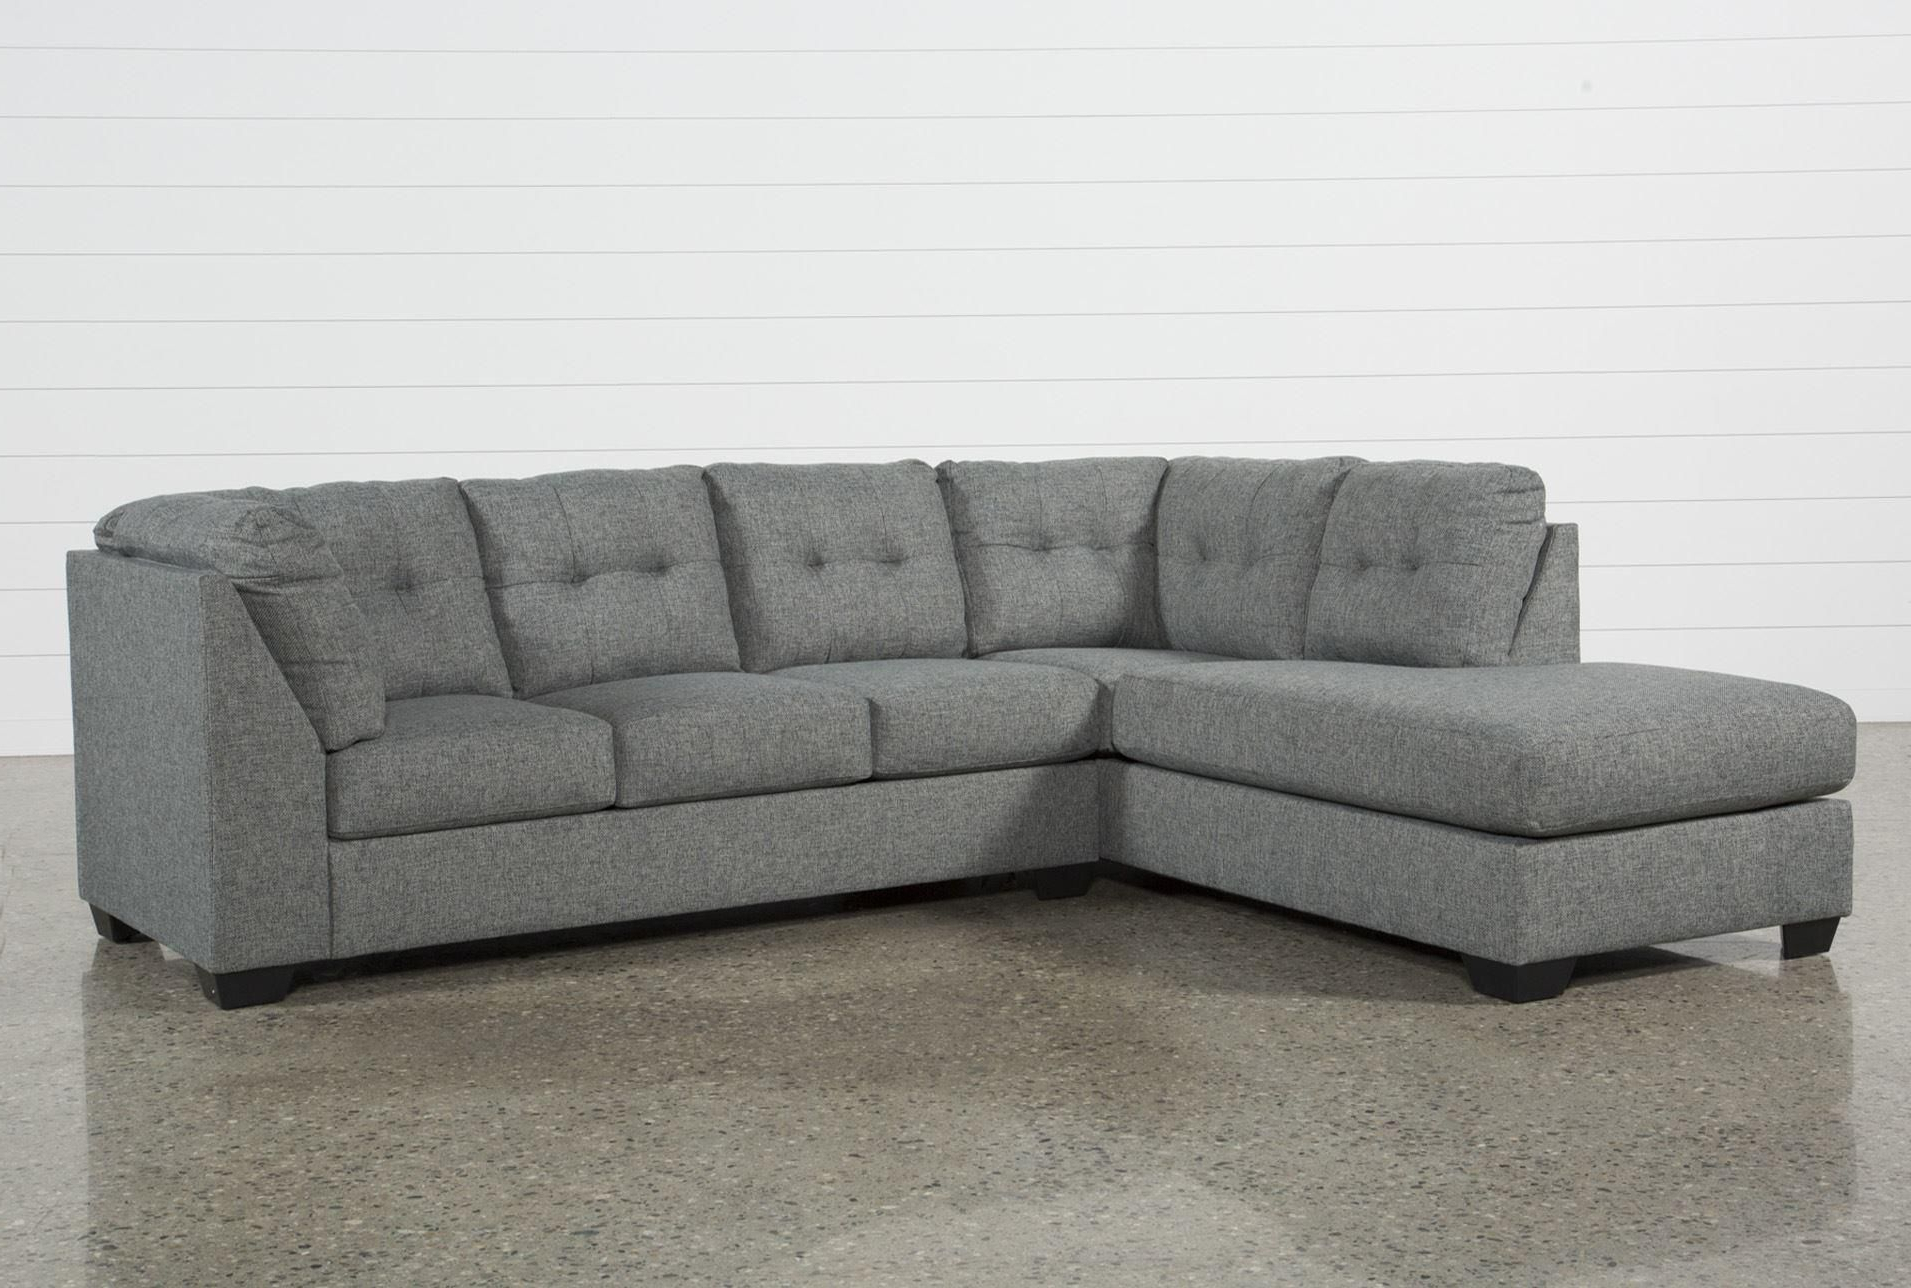 Turdur 3 Piece Sectionals With Laf Loveseat For Well Known Arrowmask 2 Piece Sectional W/sleeper & Left Facing Chaise (Gallery 8 of 20)